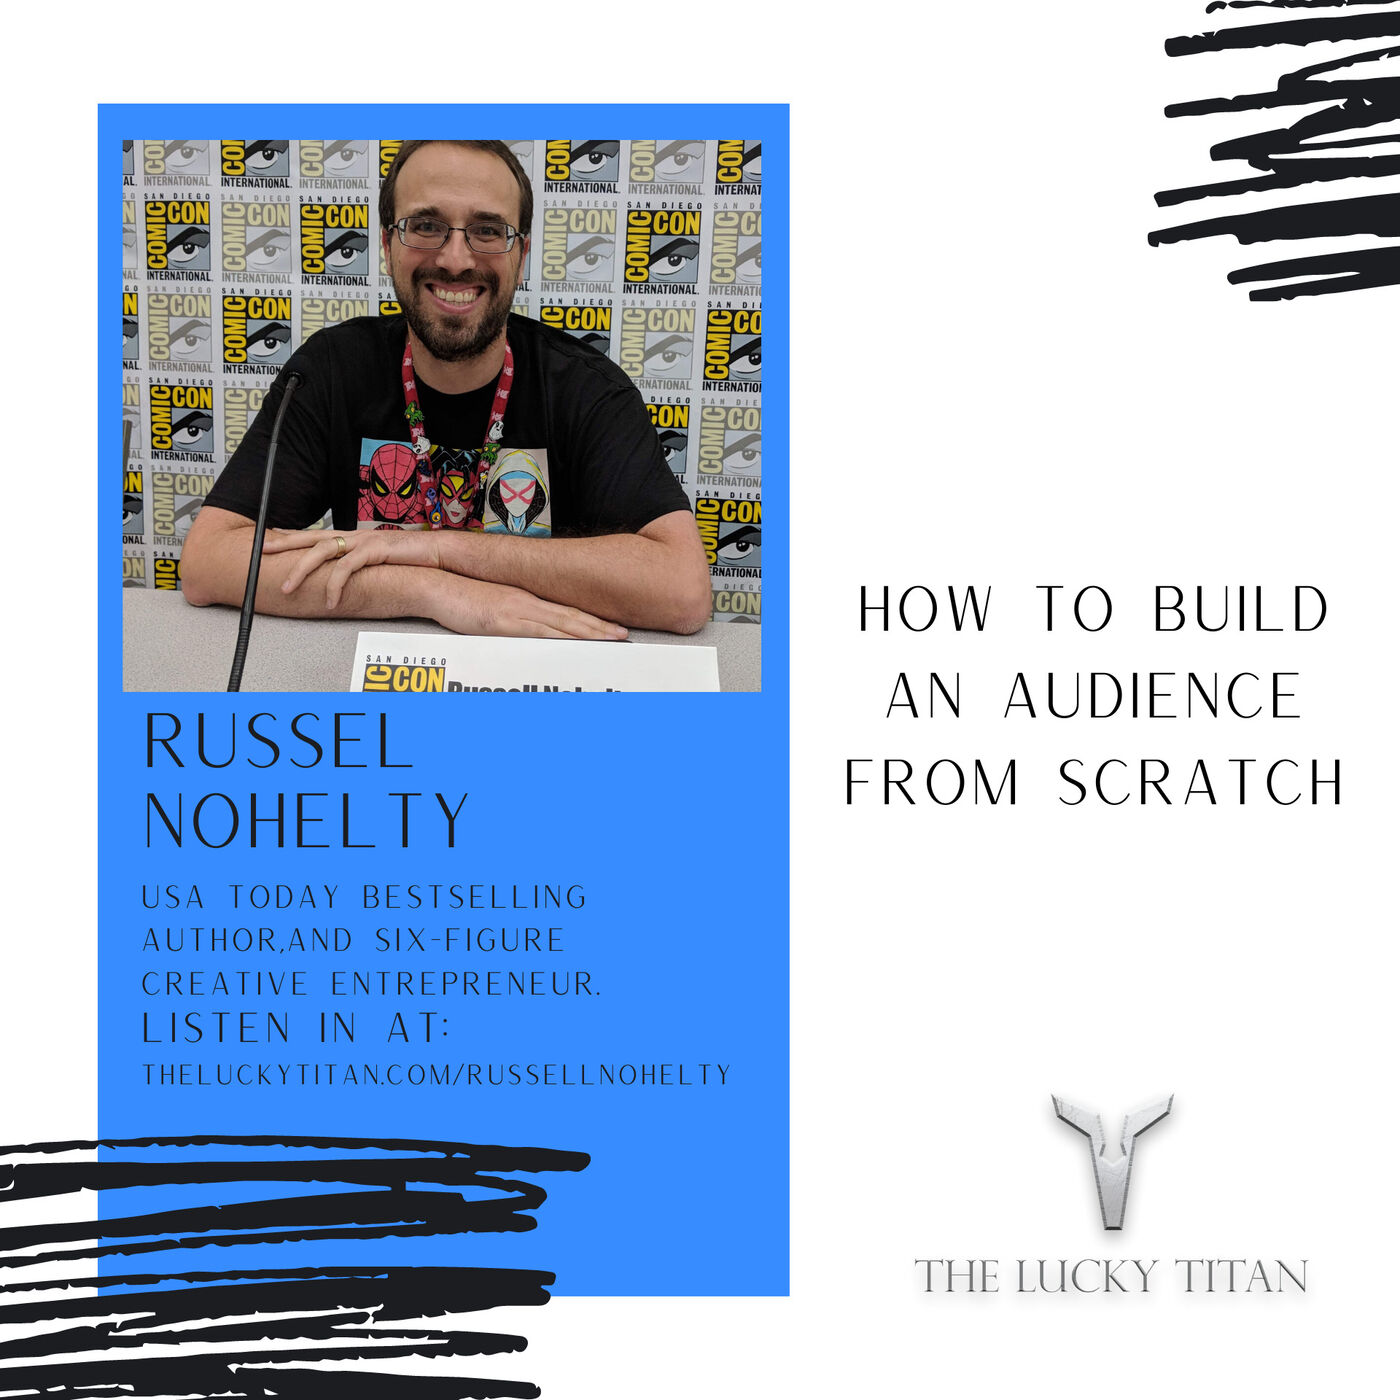 How To Build An Audience From Scratch With Russell Nohelty